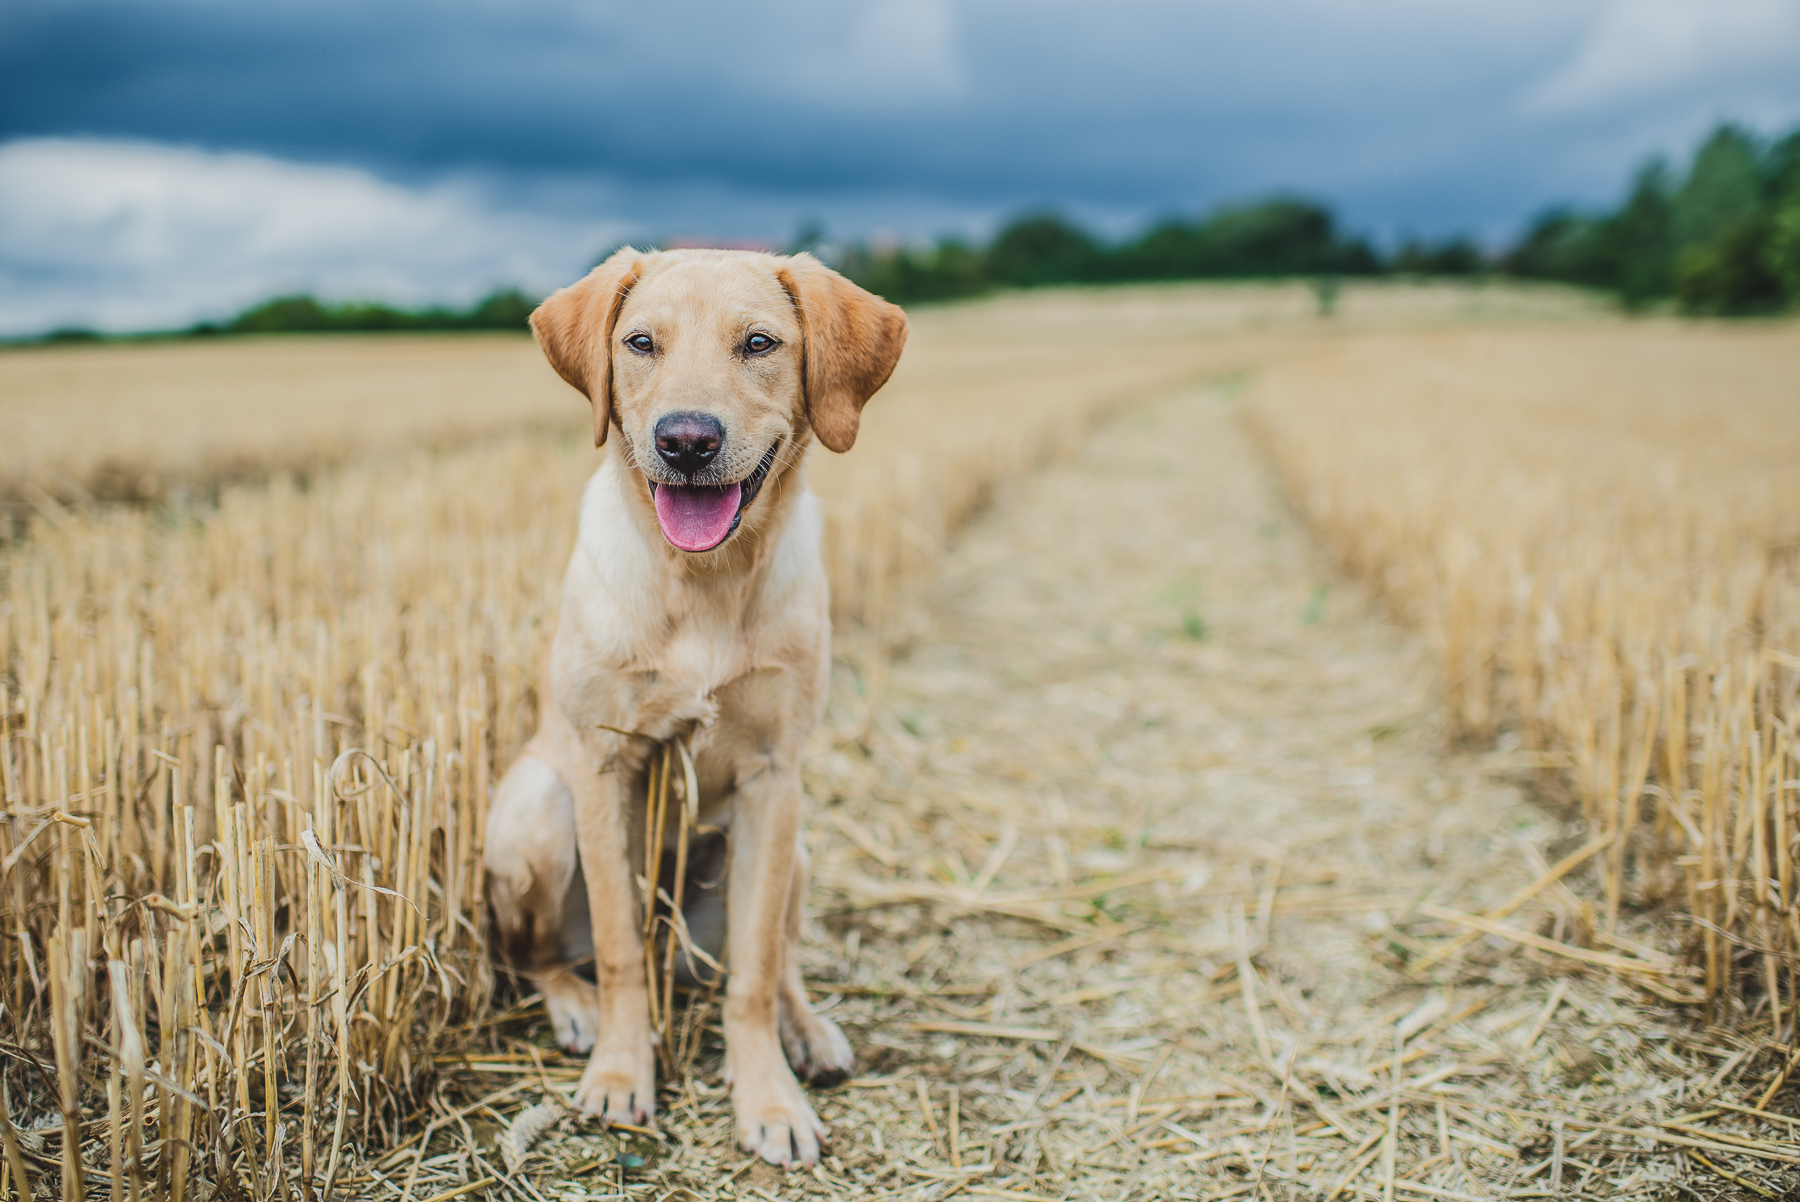 Yellow Labrador sitting on a path in a field